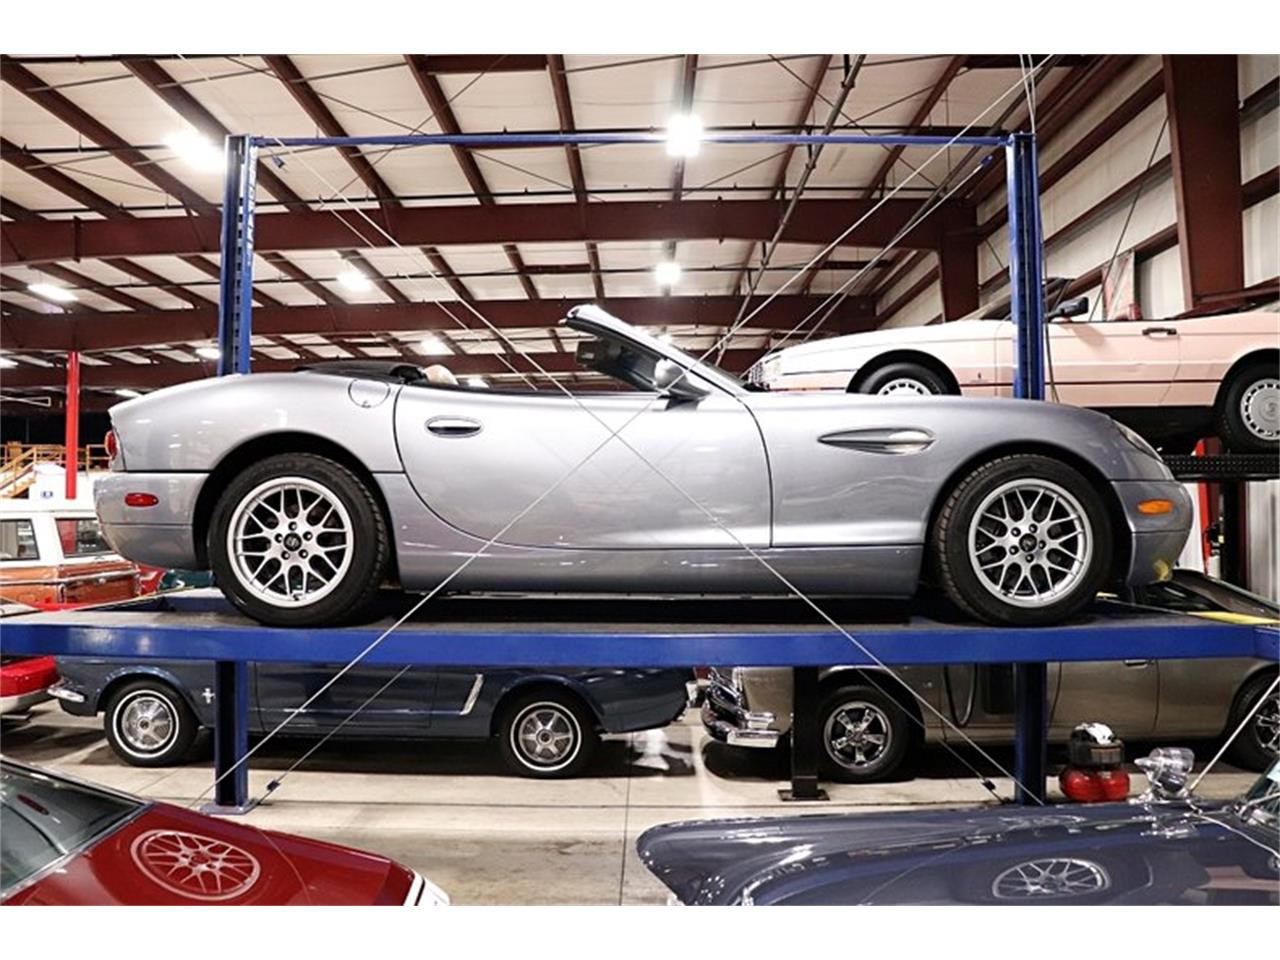 2001 Panoz Esperante for sale in Kentwood, MI – photo 83